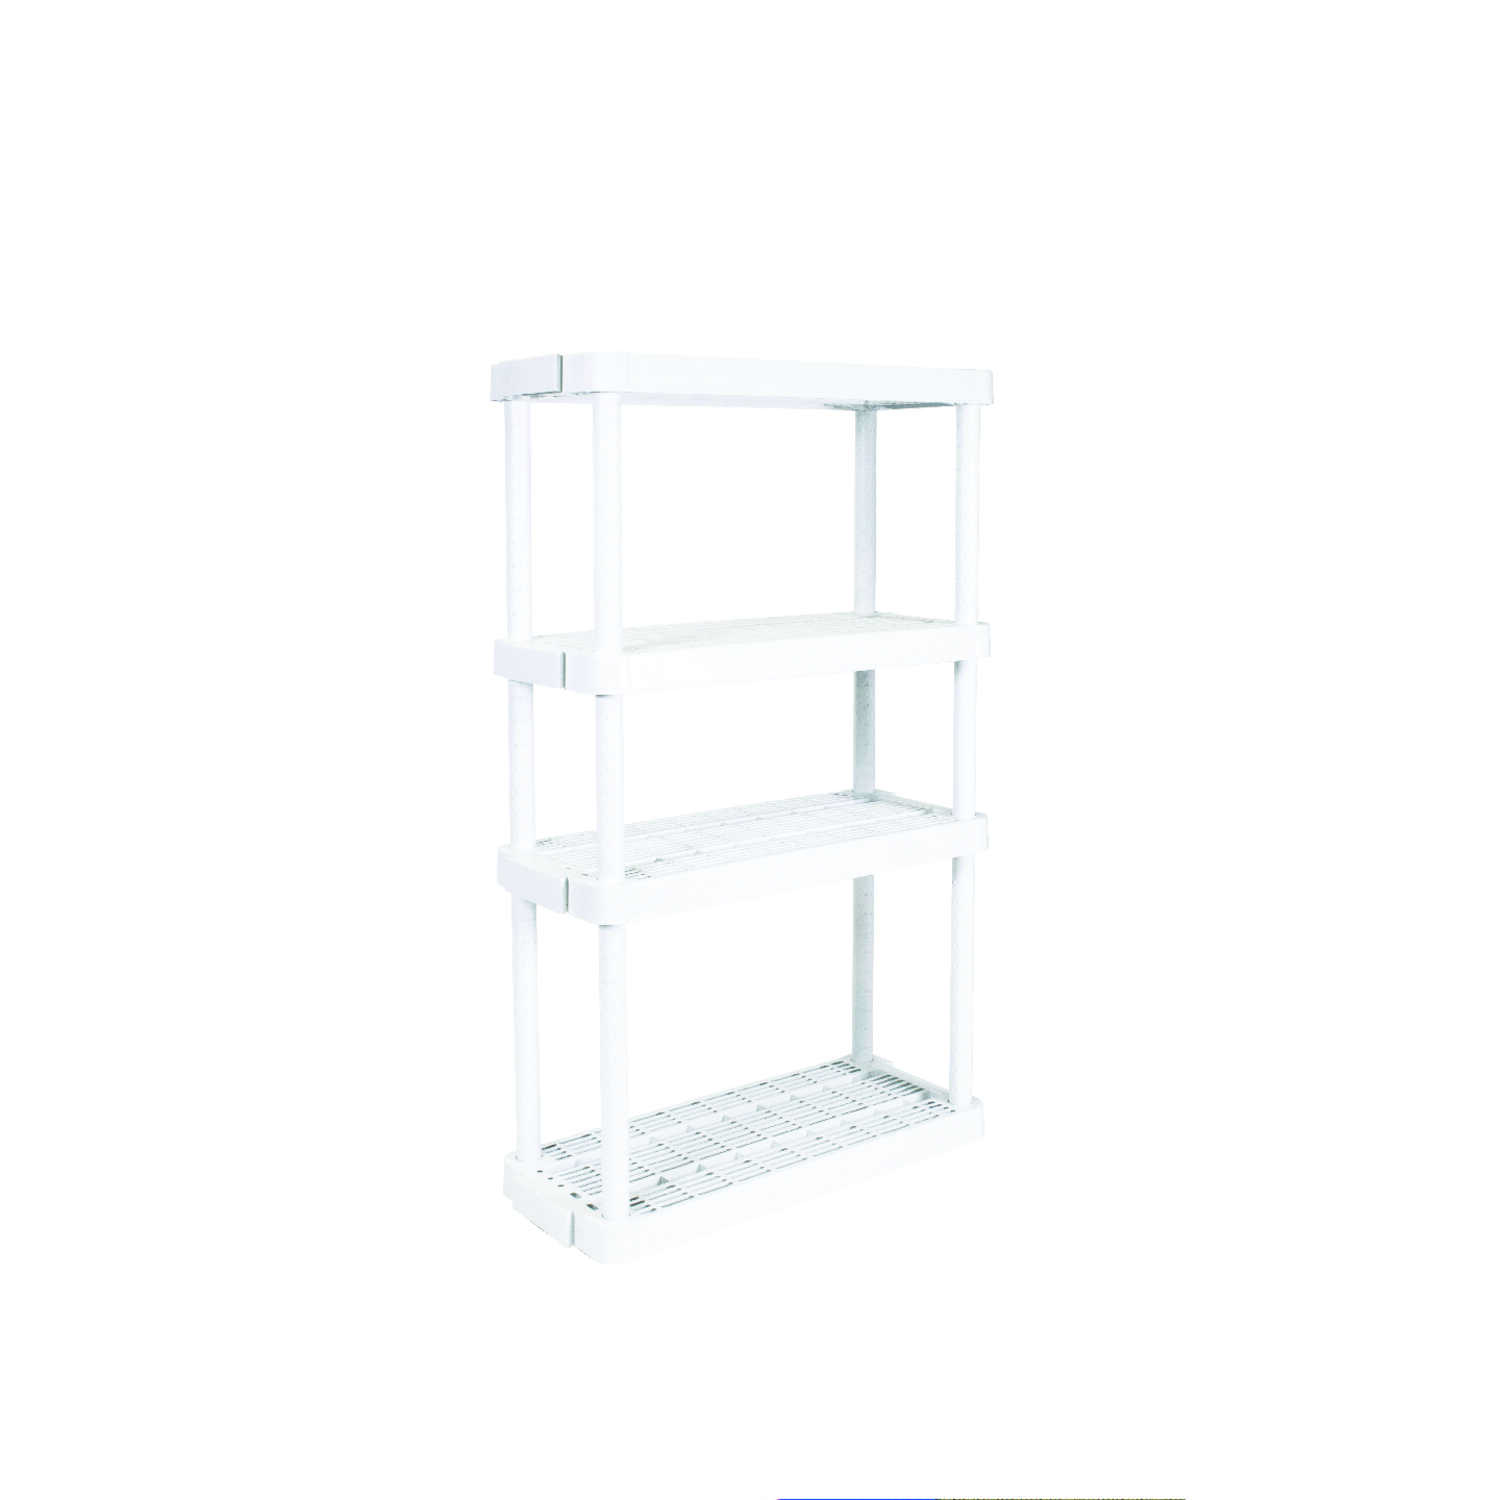 Gracious Living  32 in. W x 54-1/2 in. H x 14 in. D Shelving Unit  Resin